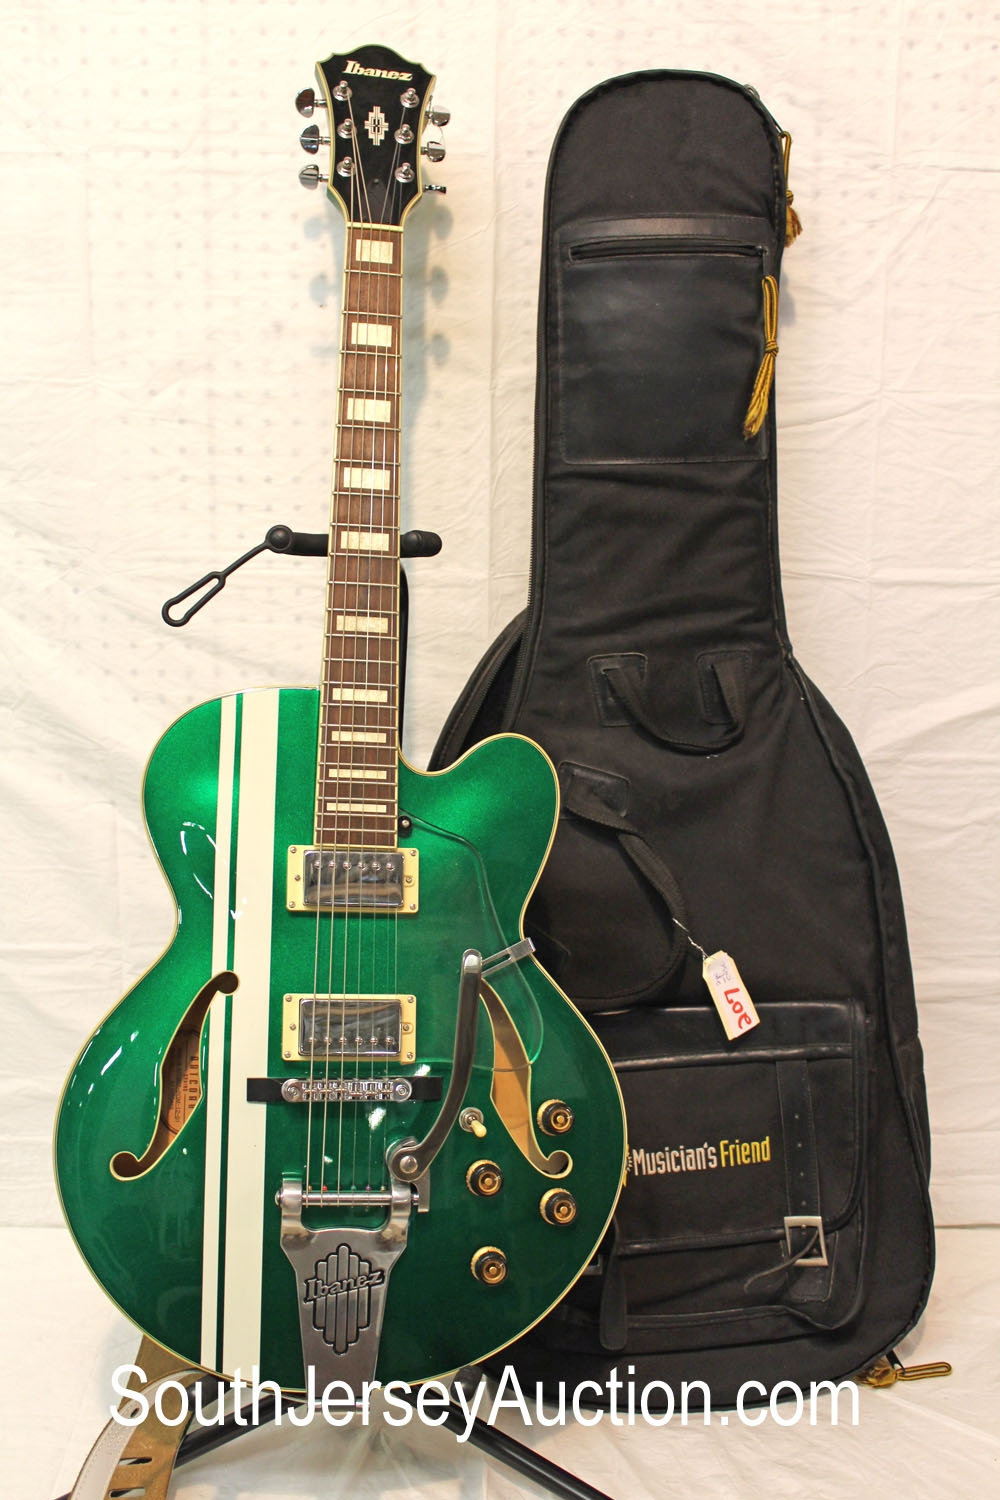 Ibanez 2010 Roadster, full hollow body, bigsby style whammy bar, very good condition, metallic green with white stripe, s/n N427, double f holes, with soft gig bag